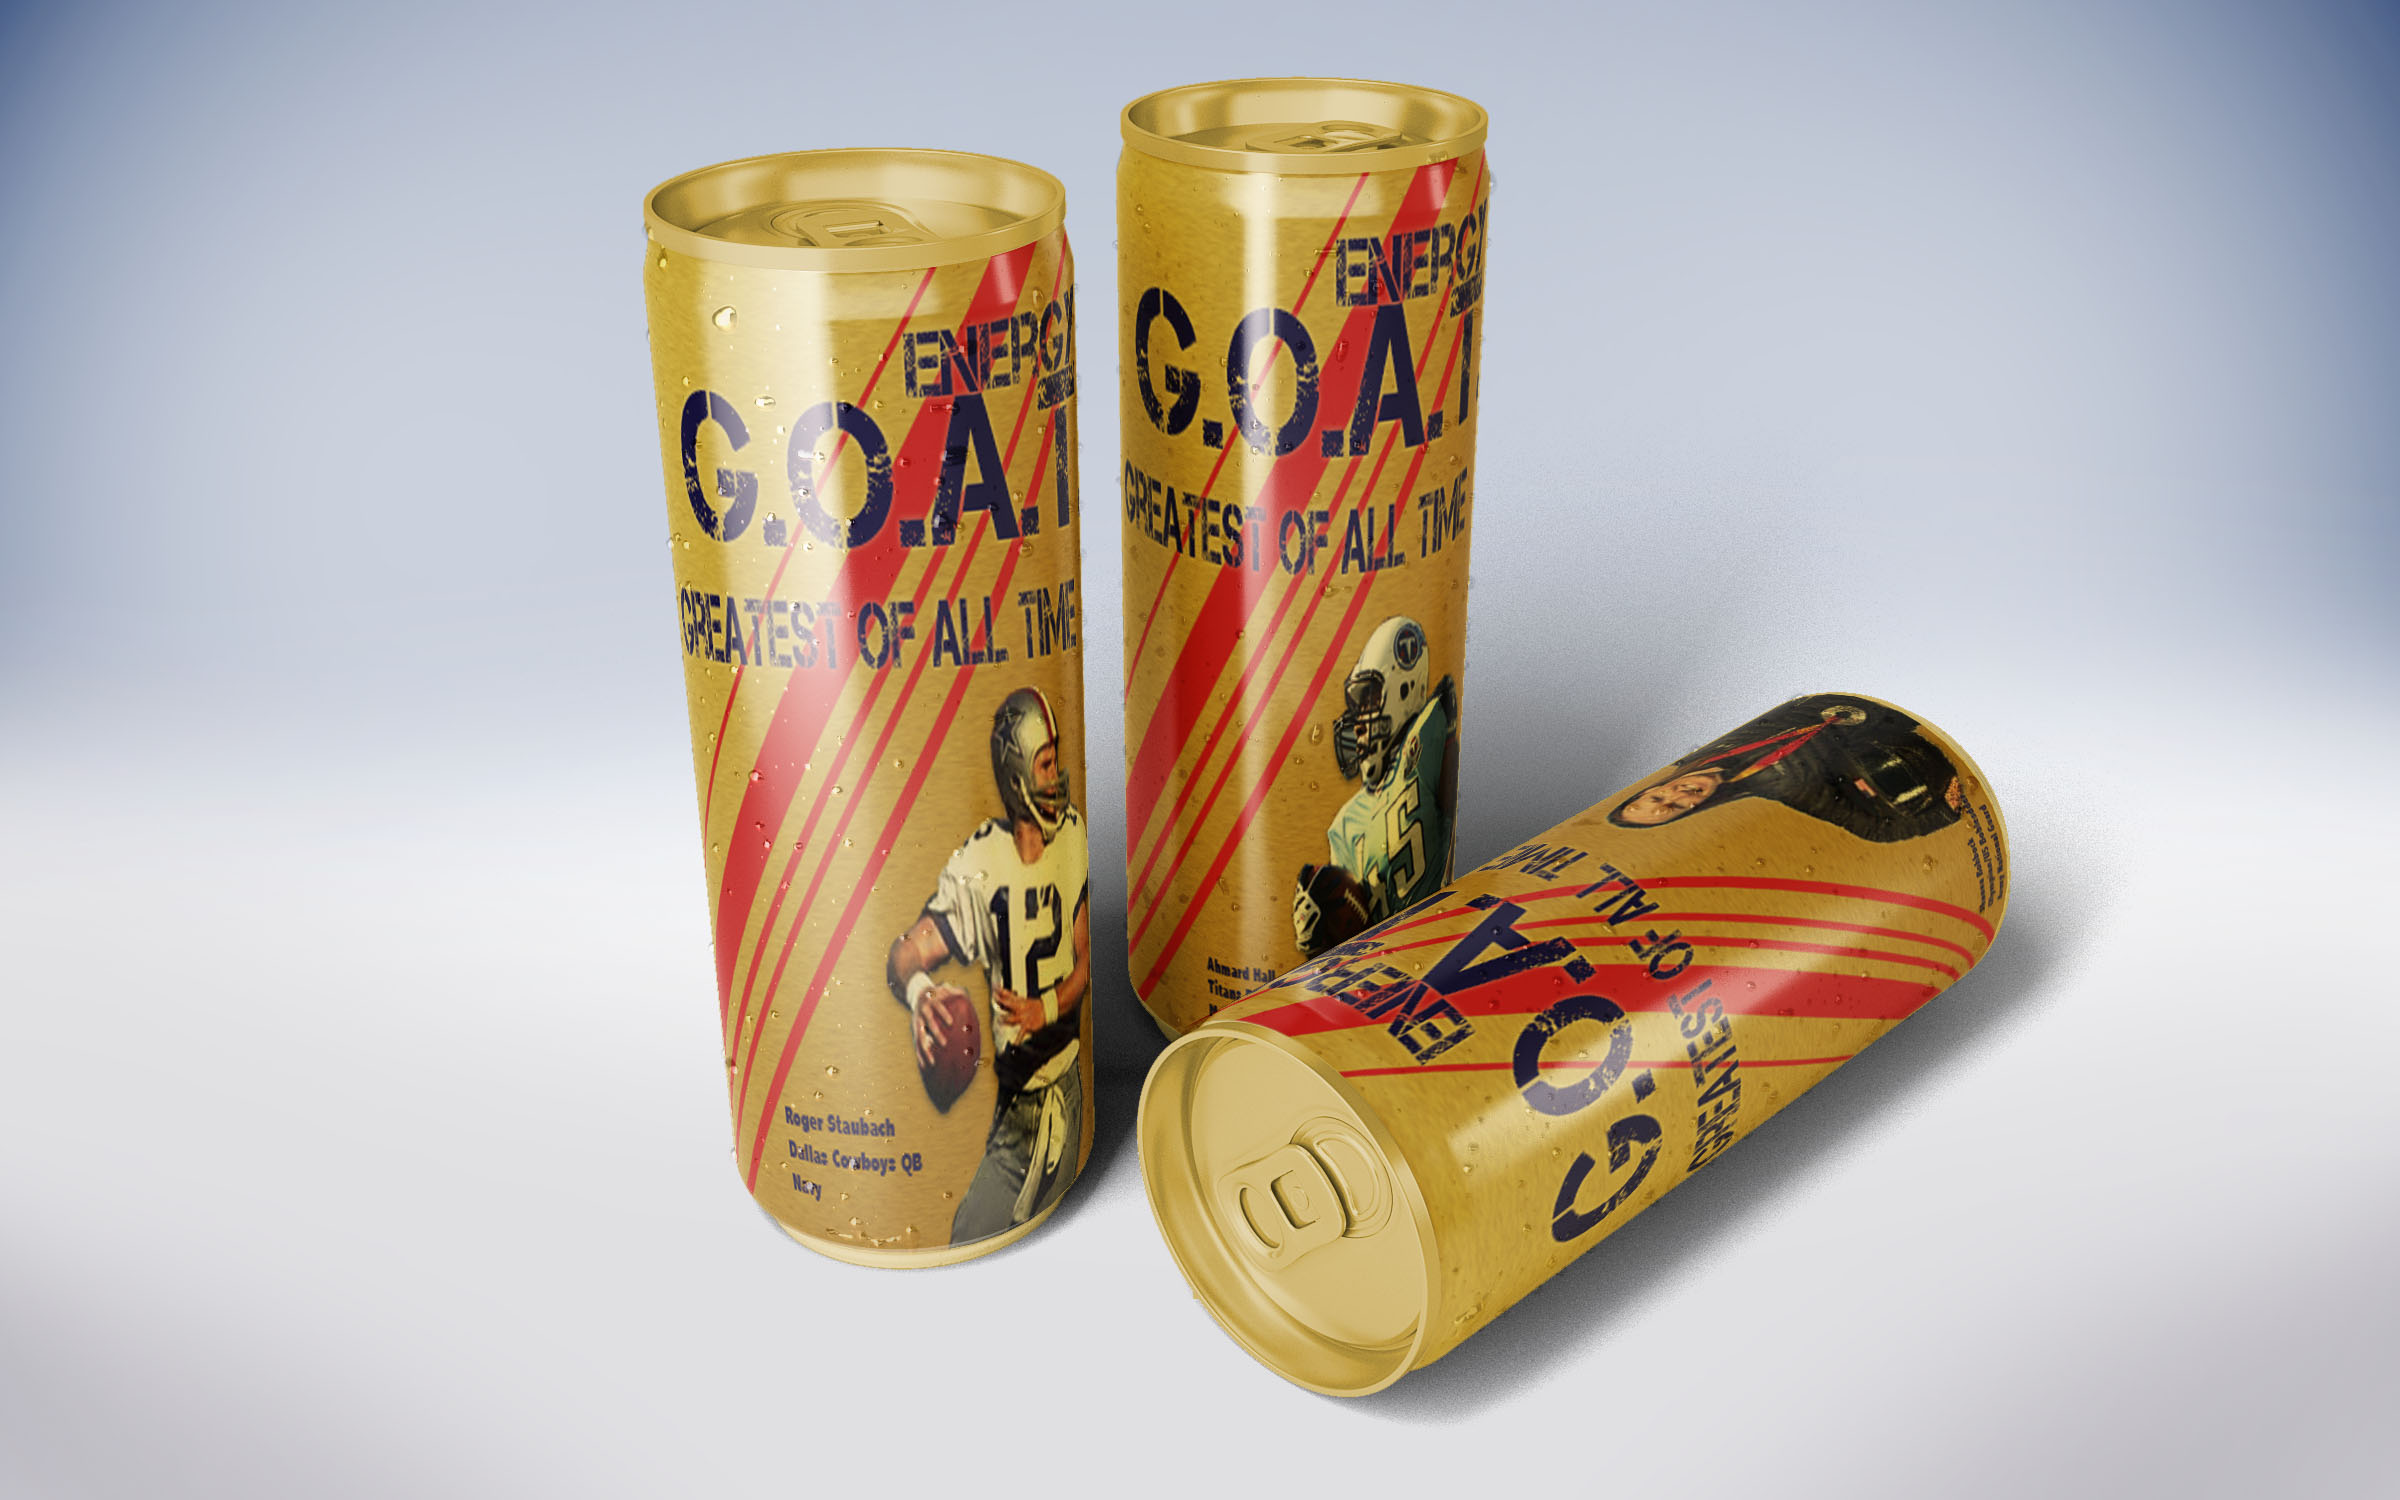 GOAT cans